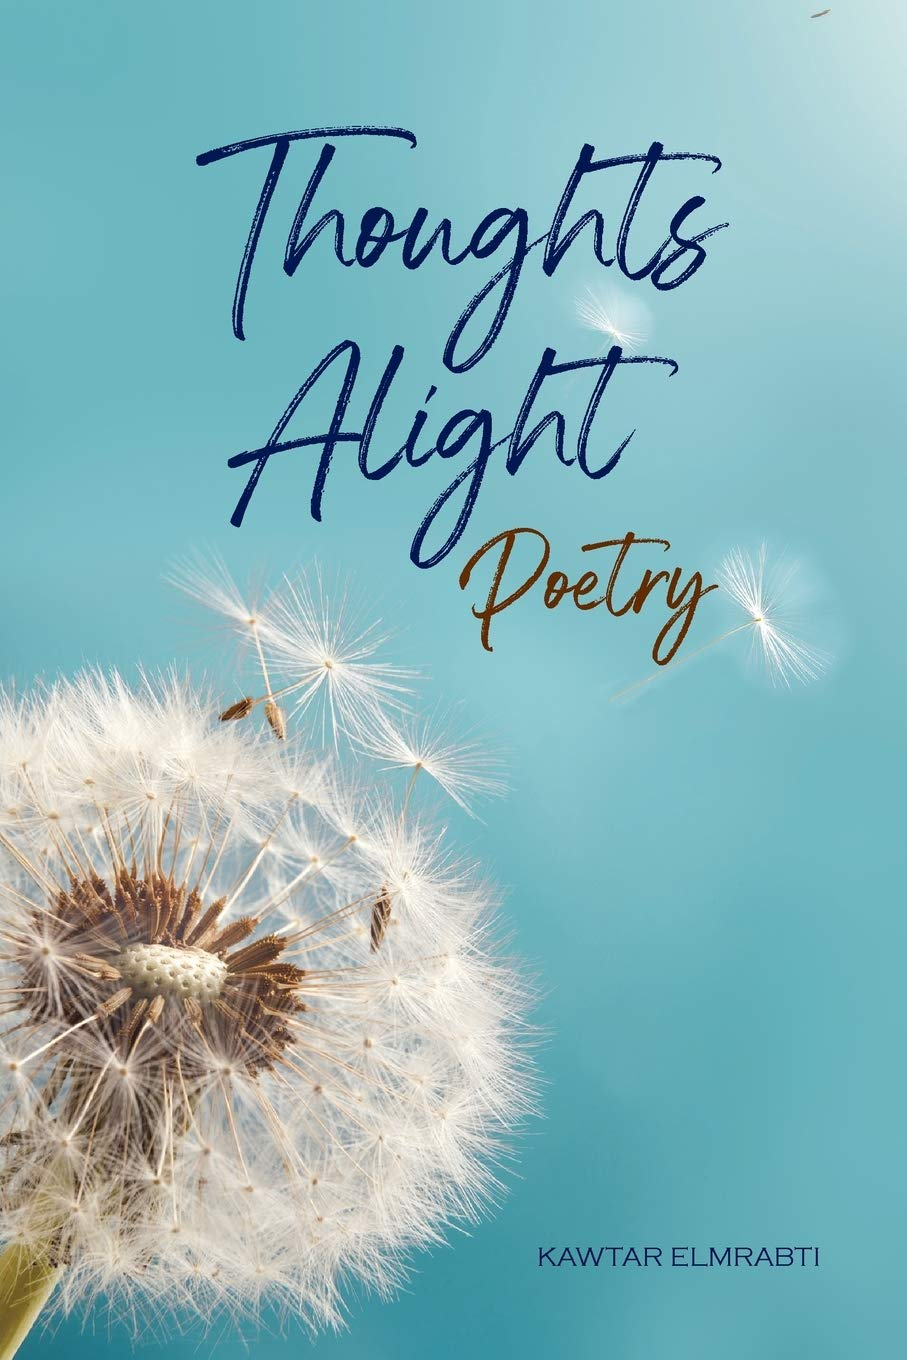 Book Review - Thoughts Alight by Kawtar Elmrabti